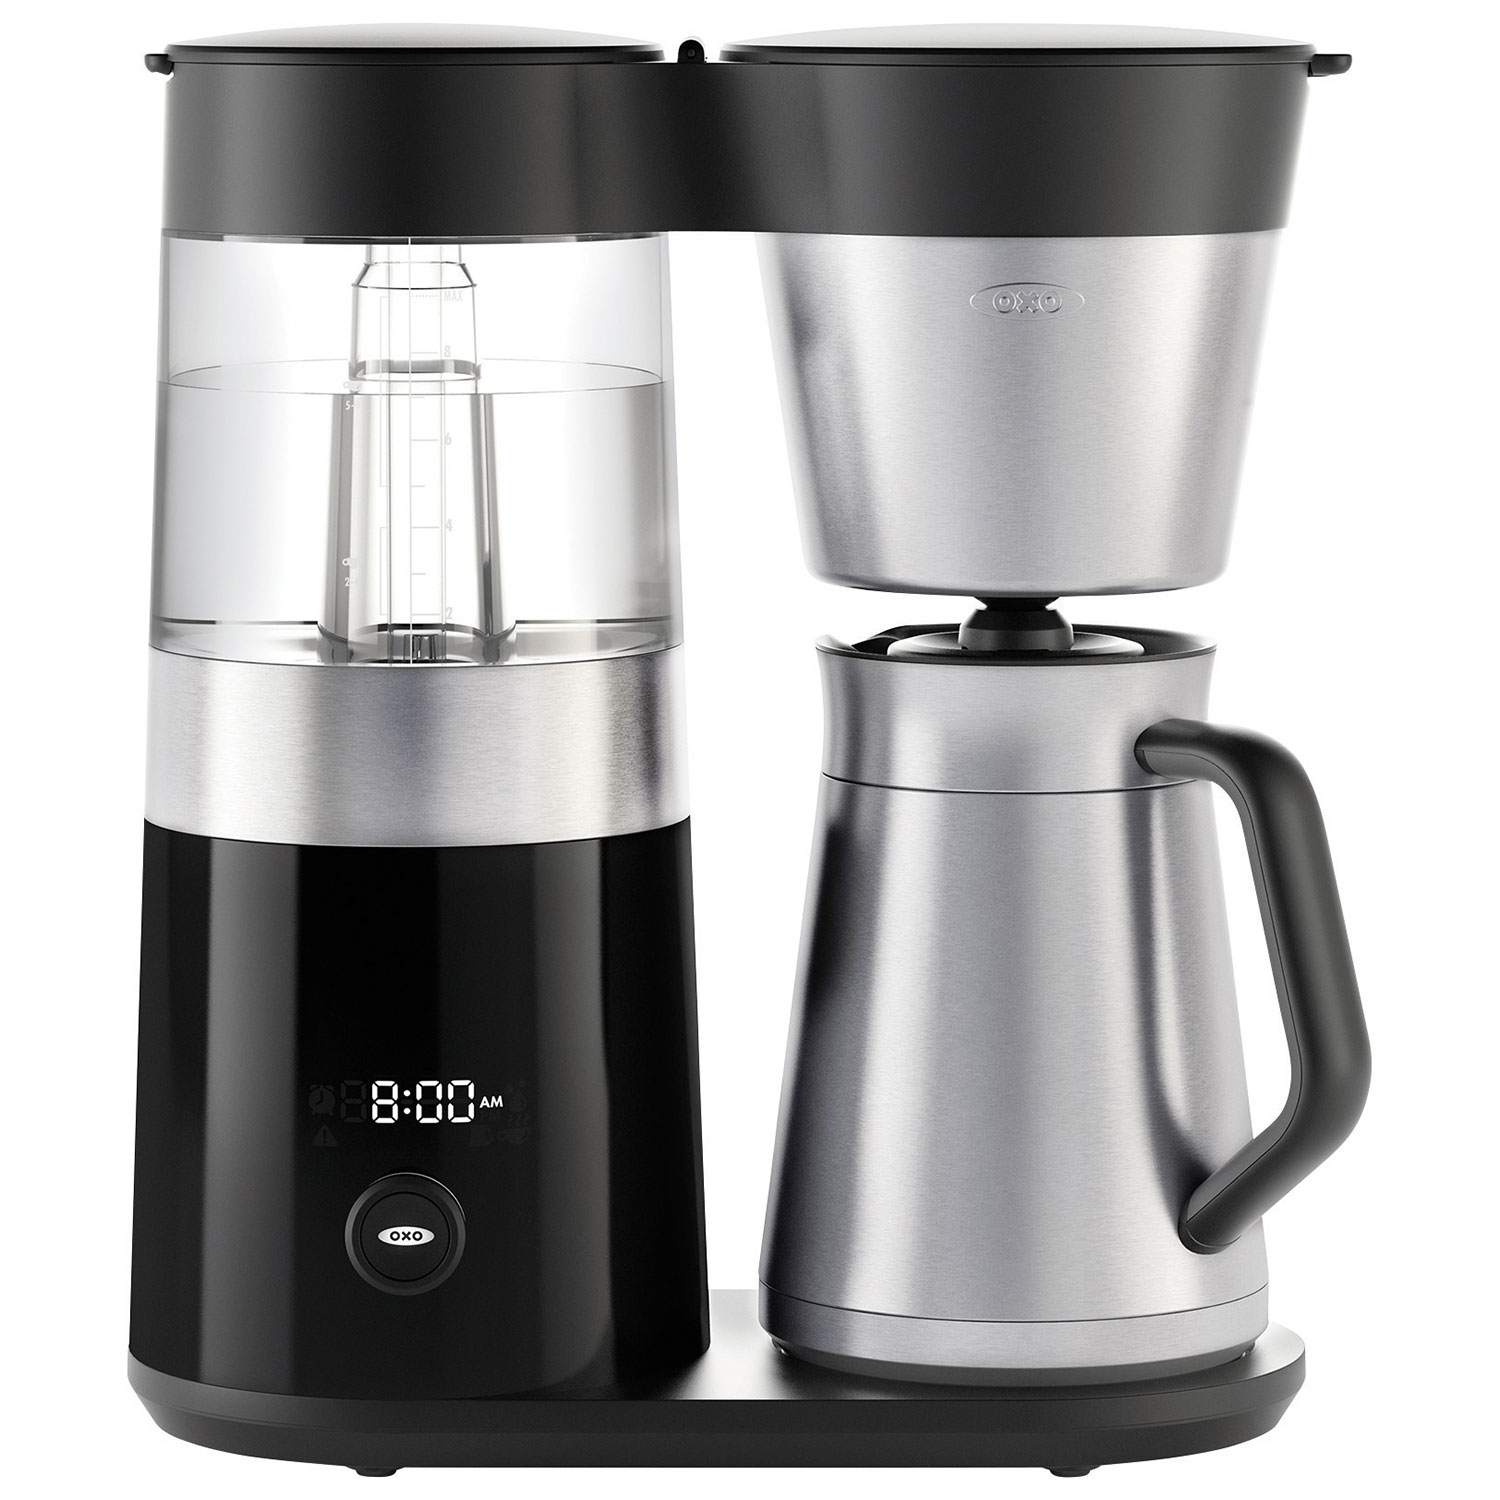 OXO Drip Coffee Maker